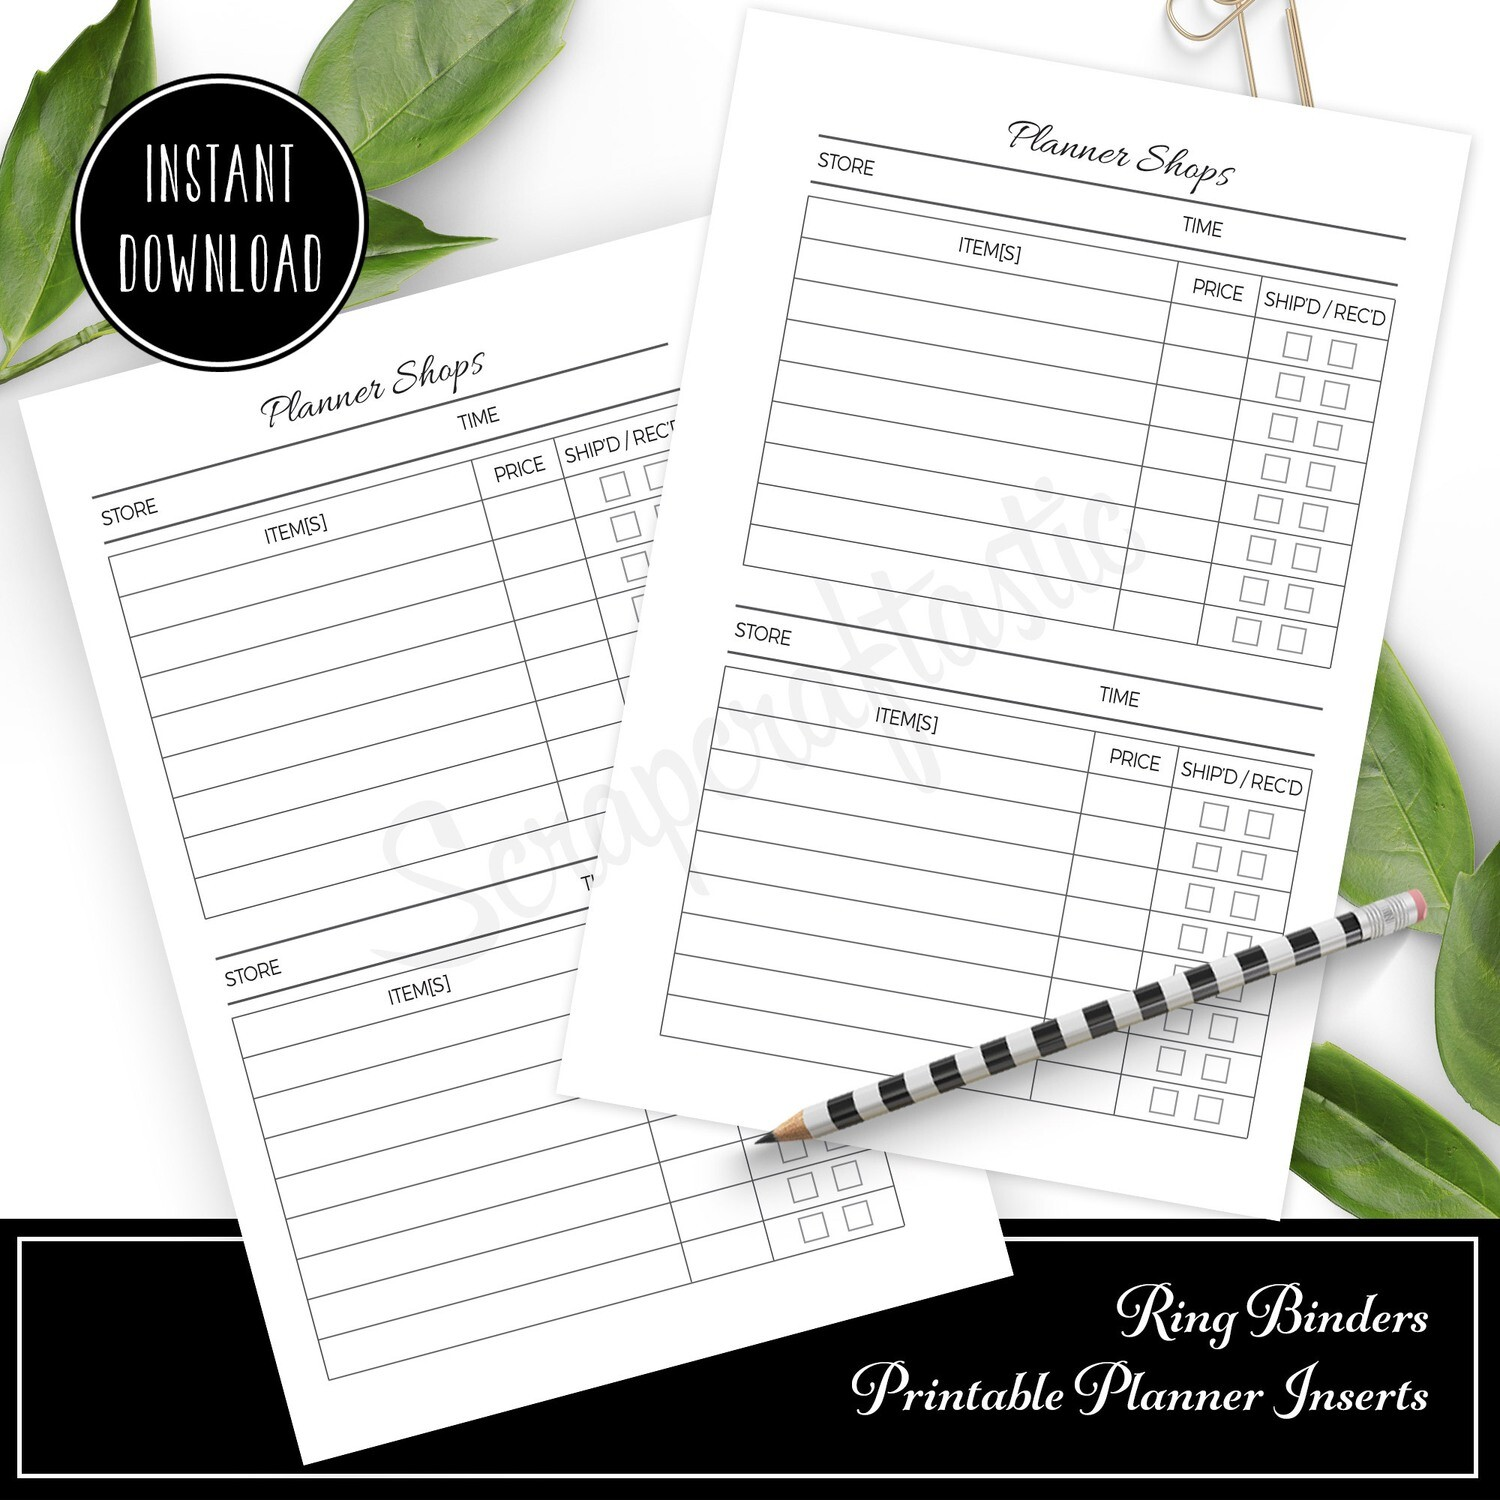 A5 TN or RINGS - Black Friday Shopping Ring Bound or Traveler's Notebook Printable Planner Inserts